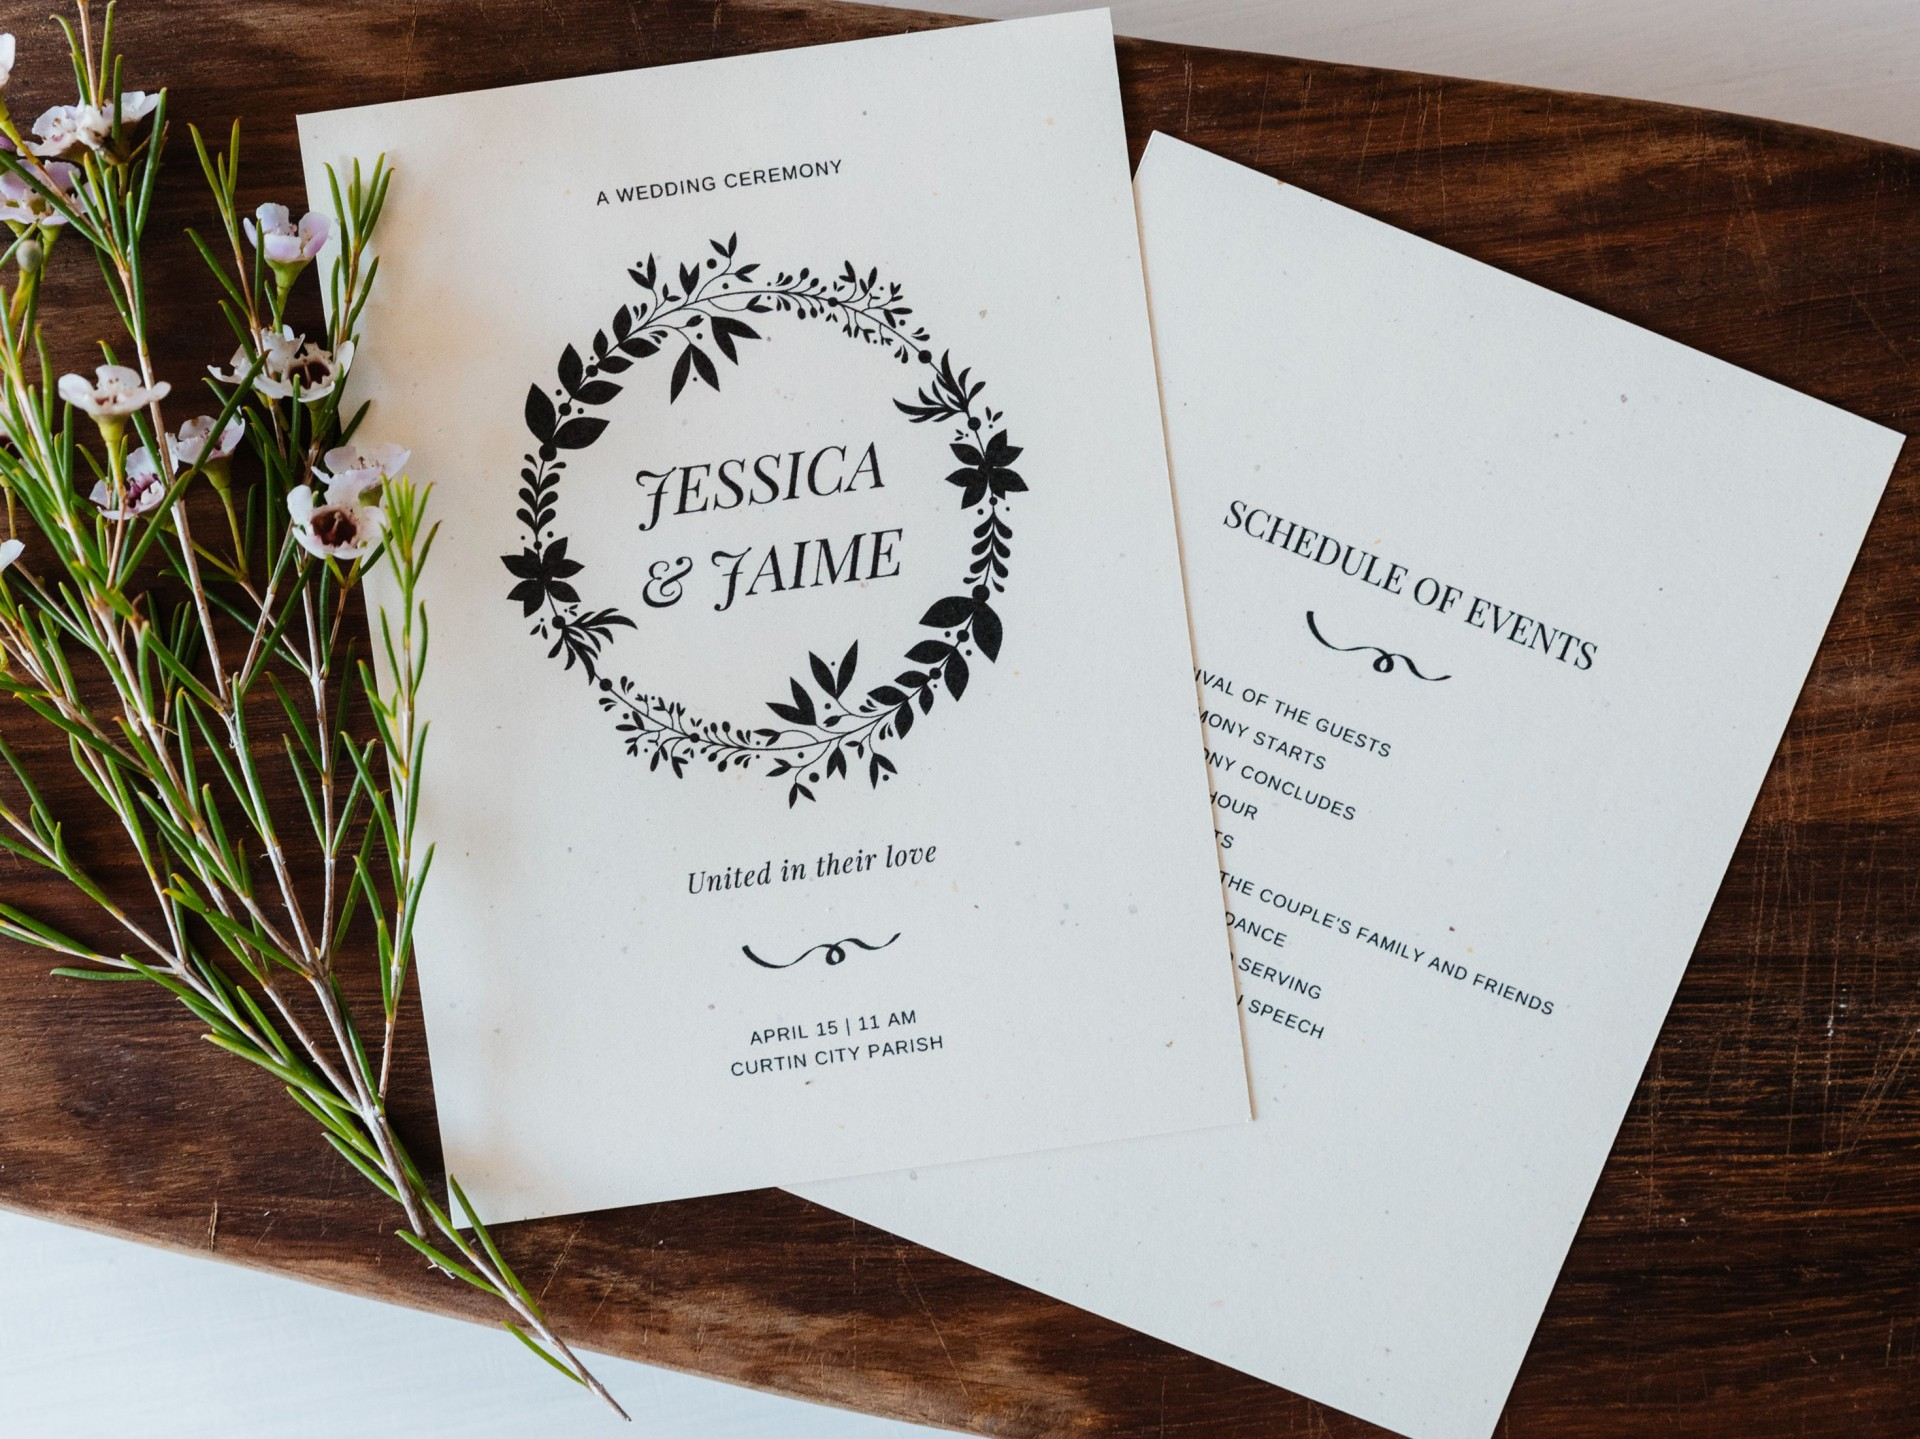 006 Surprising Free Wedding Ceremony Program Template High Definition  Catholic Download1920